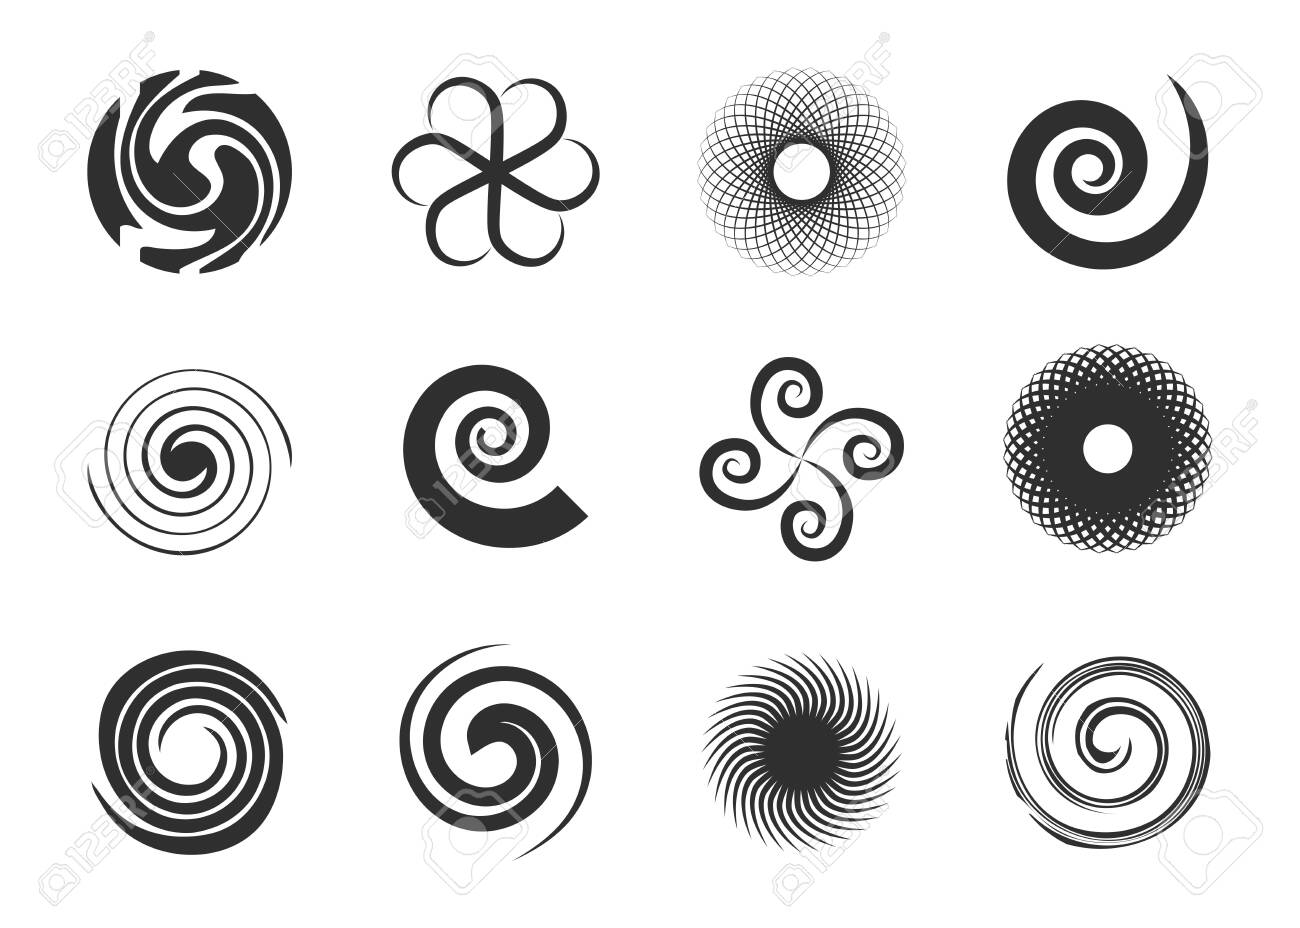 Circular swirls set. Twisted spiral circles, black various whirlpool, speed twirls, abstract graphic round shapes with motion effects. Can be used for psychedelic effect, circular movement topics - 151059115